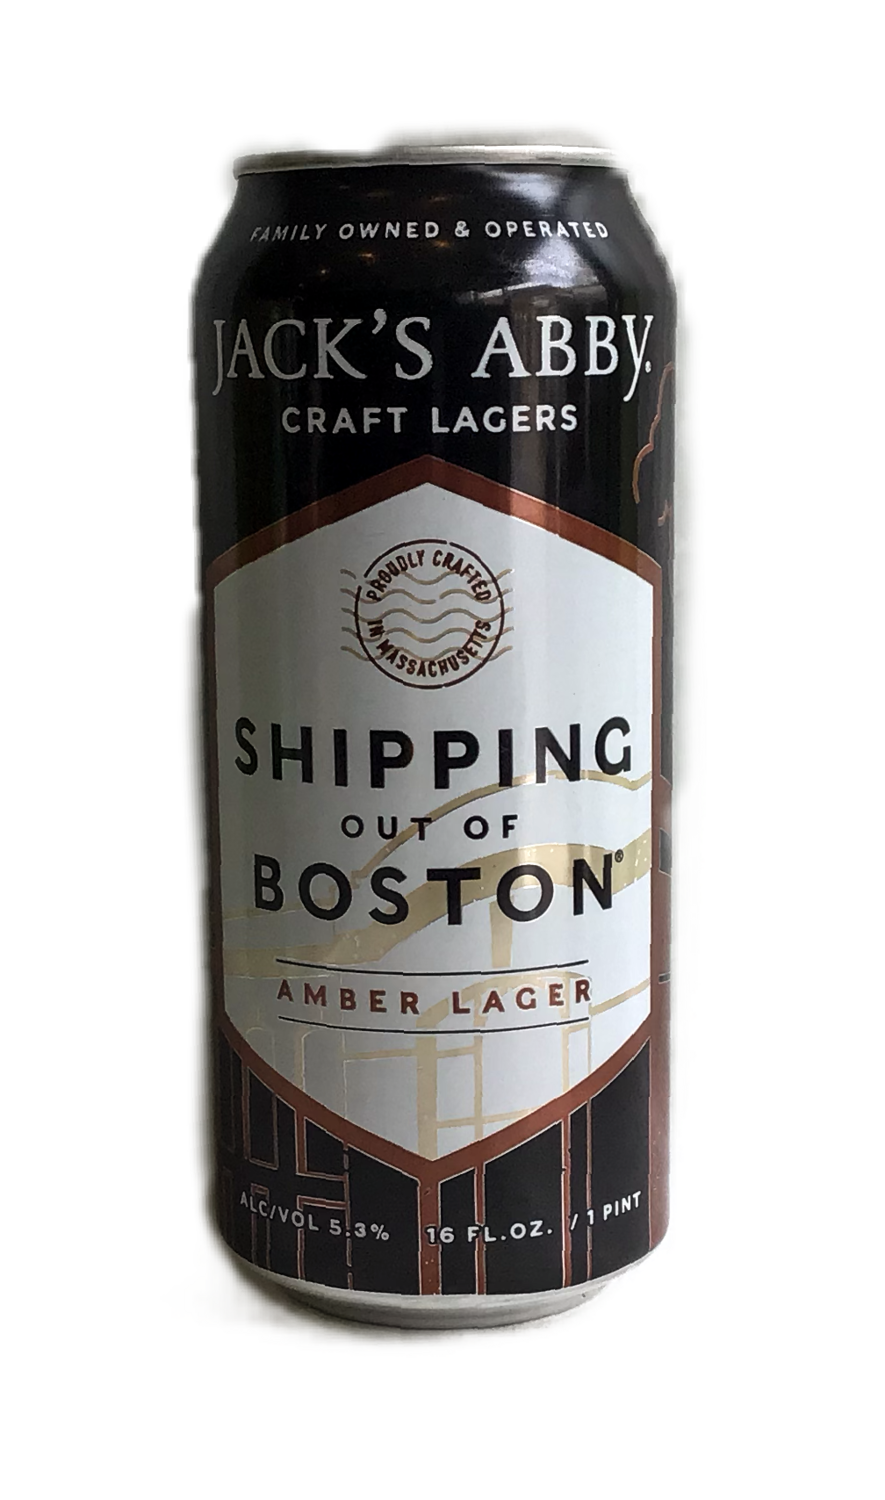 Jacks Abby Shipping Out of Boston